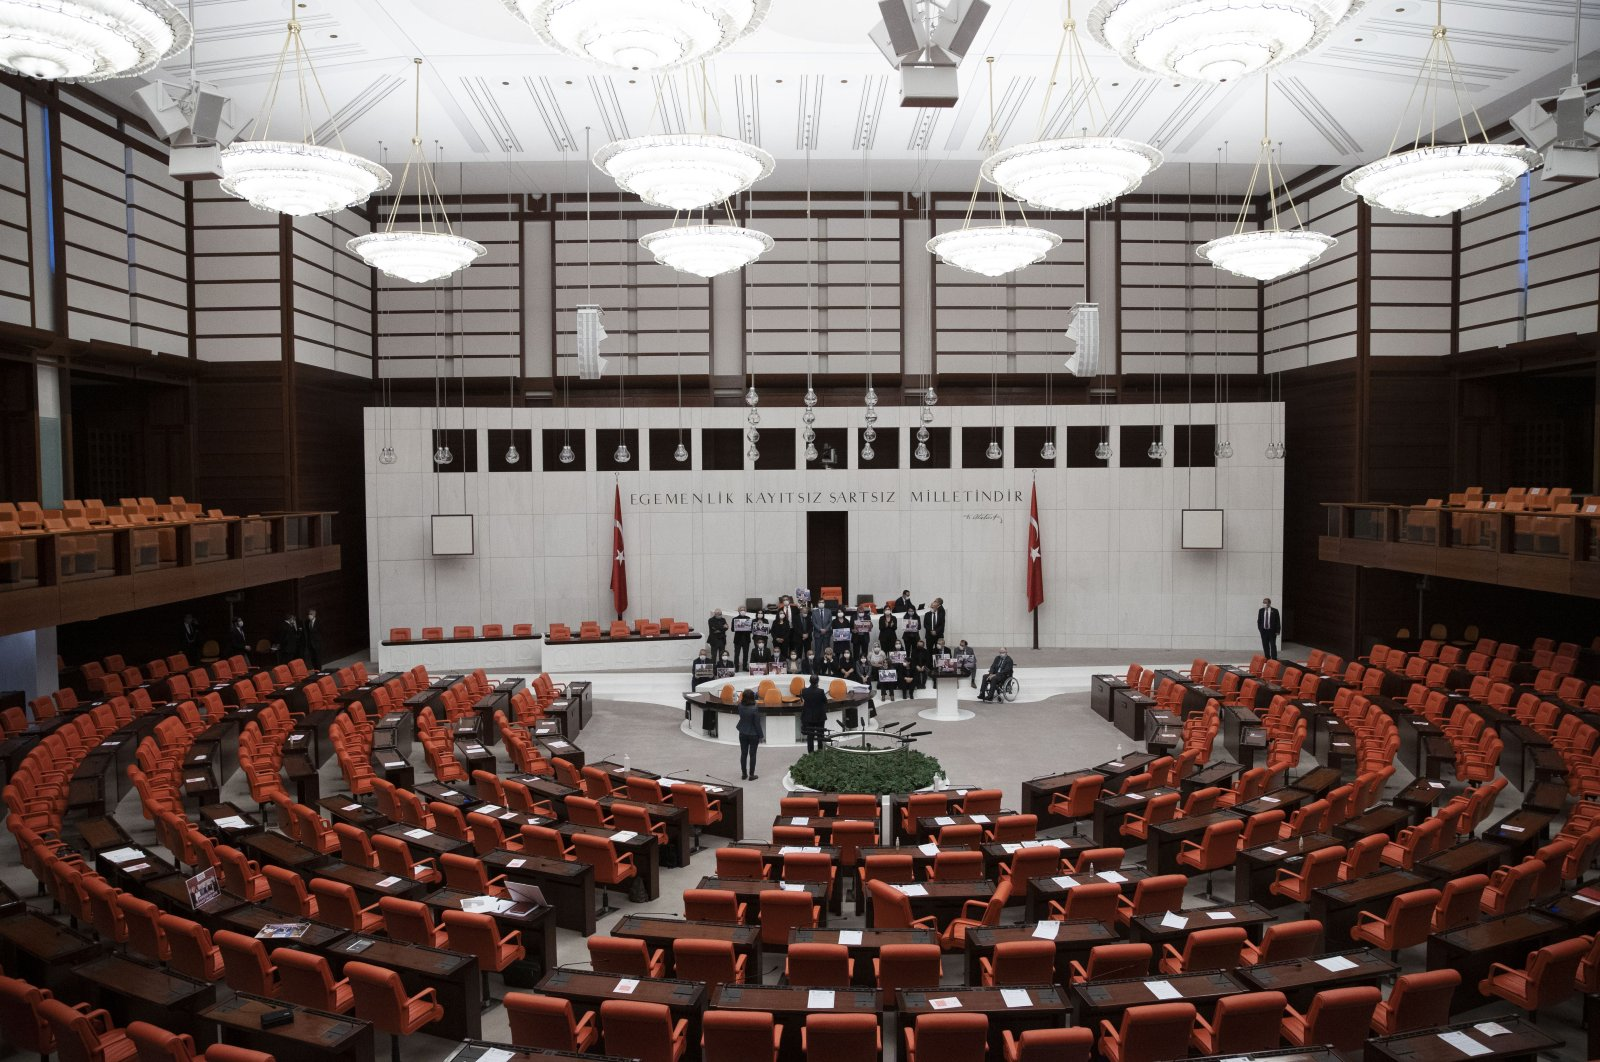 The Peoples' Democratic Party (HDP) lawmakers in protest after the parliament stripped a HDP deputy's parliamentary seat, Ankara, Turkey, March 17, 2021. (AA Photo)